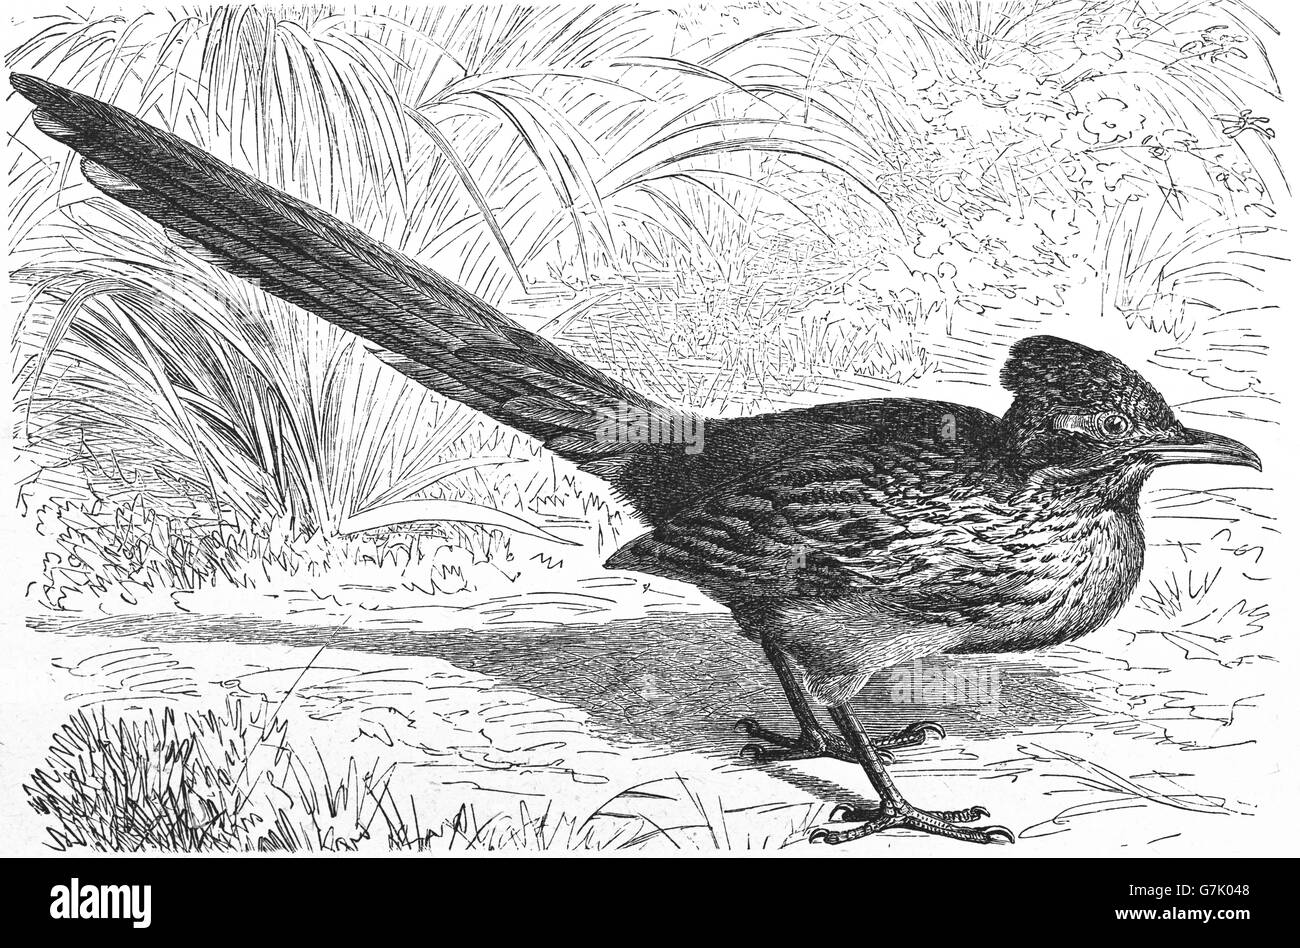 Greater roadrunner, Geococcyx californianus, illustration from book dated 1904 Stock Photo